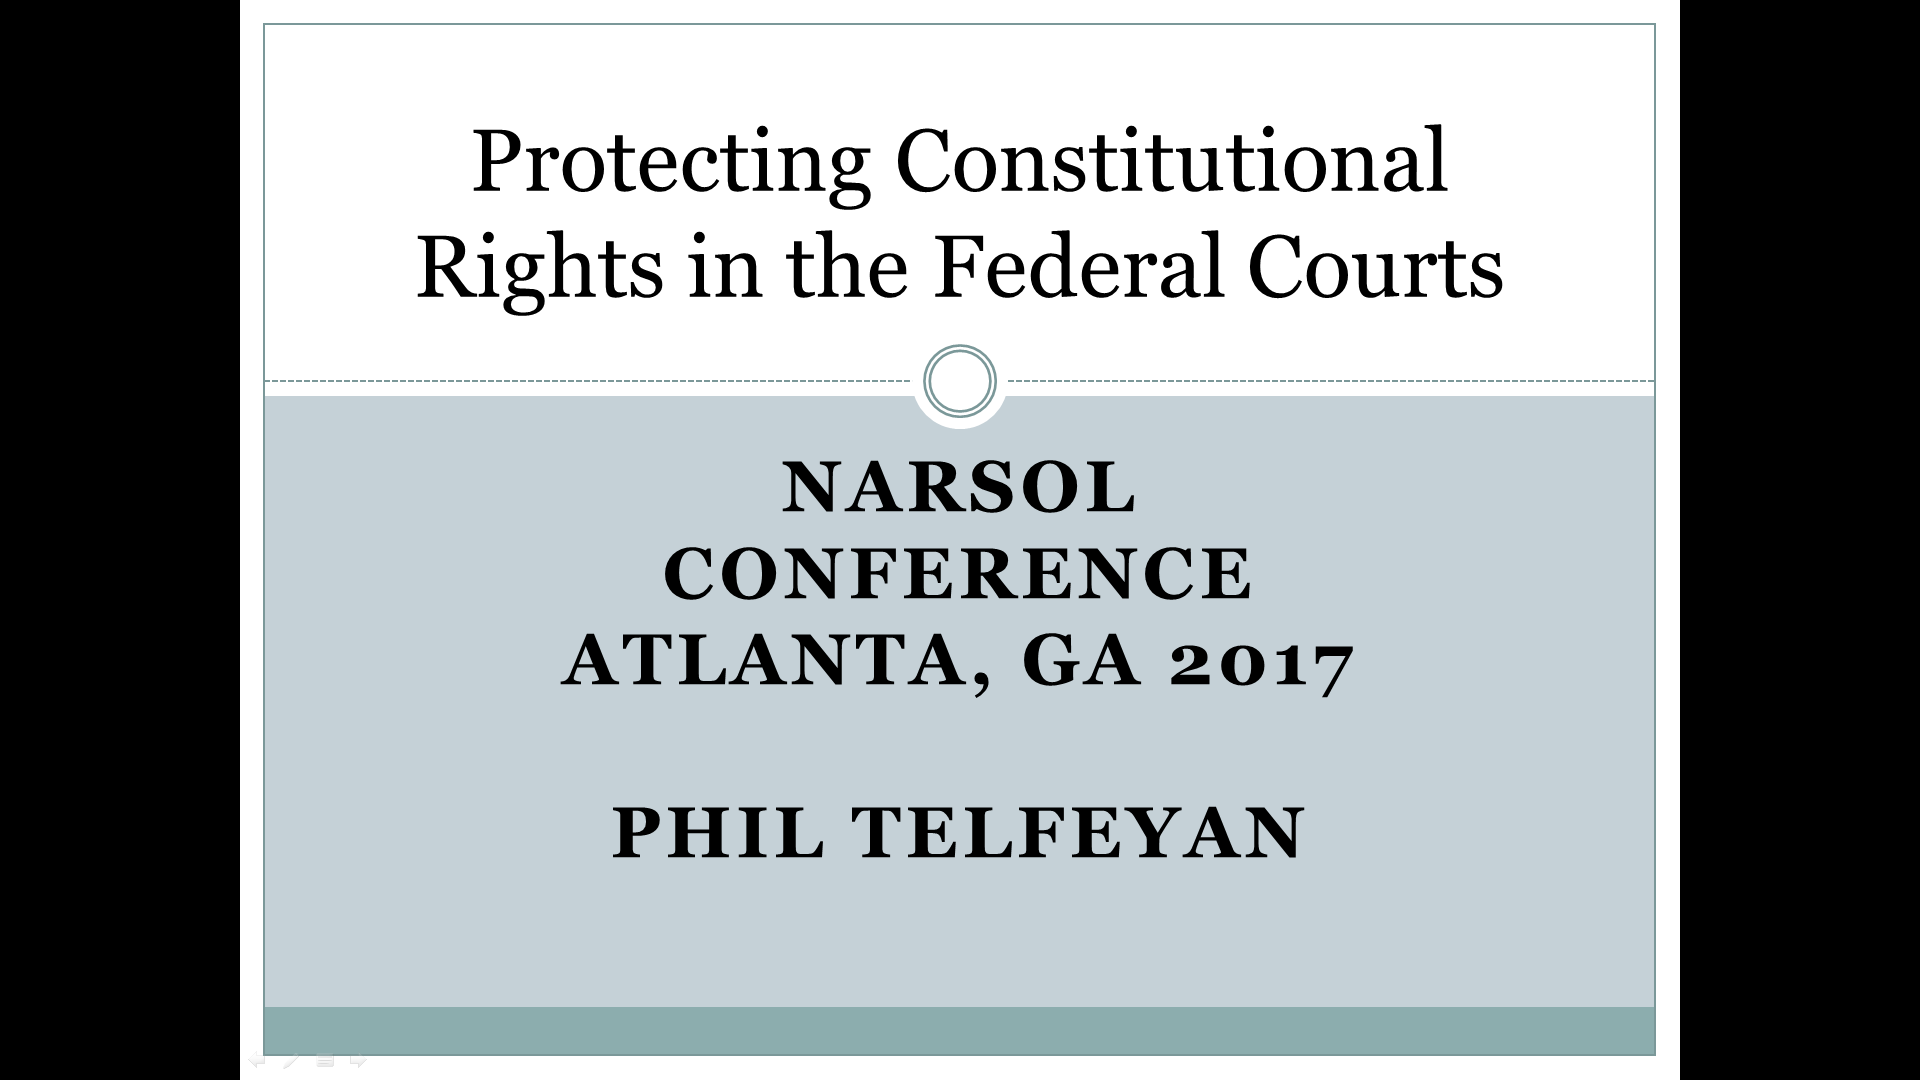 Phil Telfeyan – Protecting constitutional rights in the federal courts